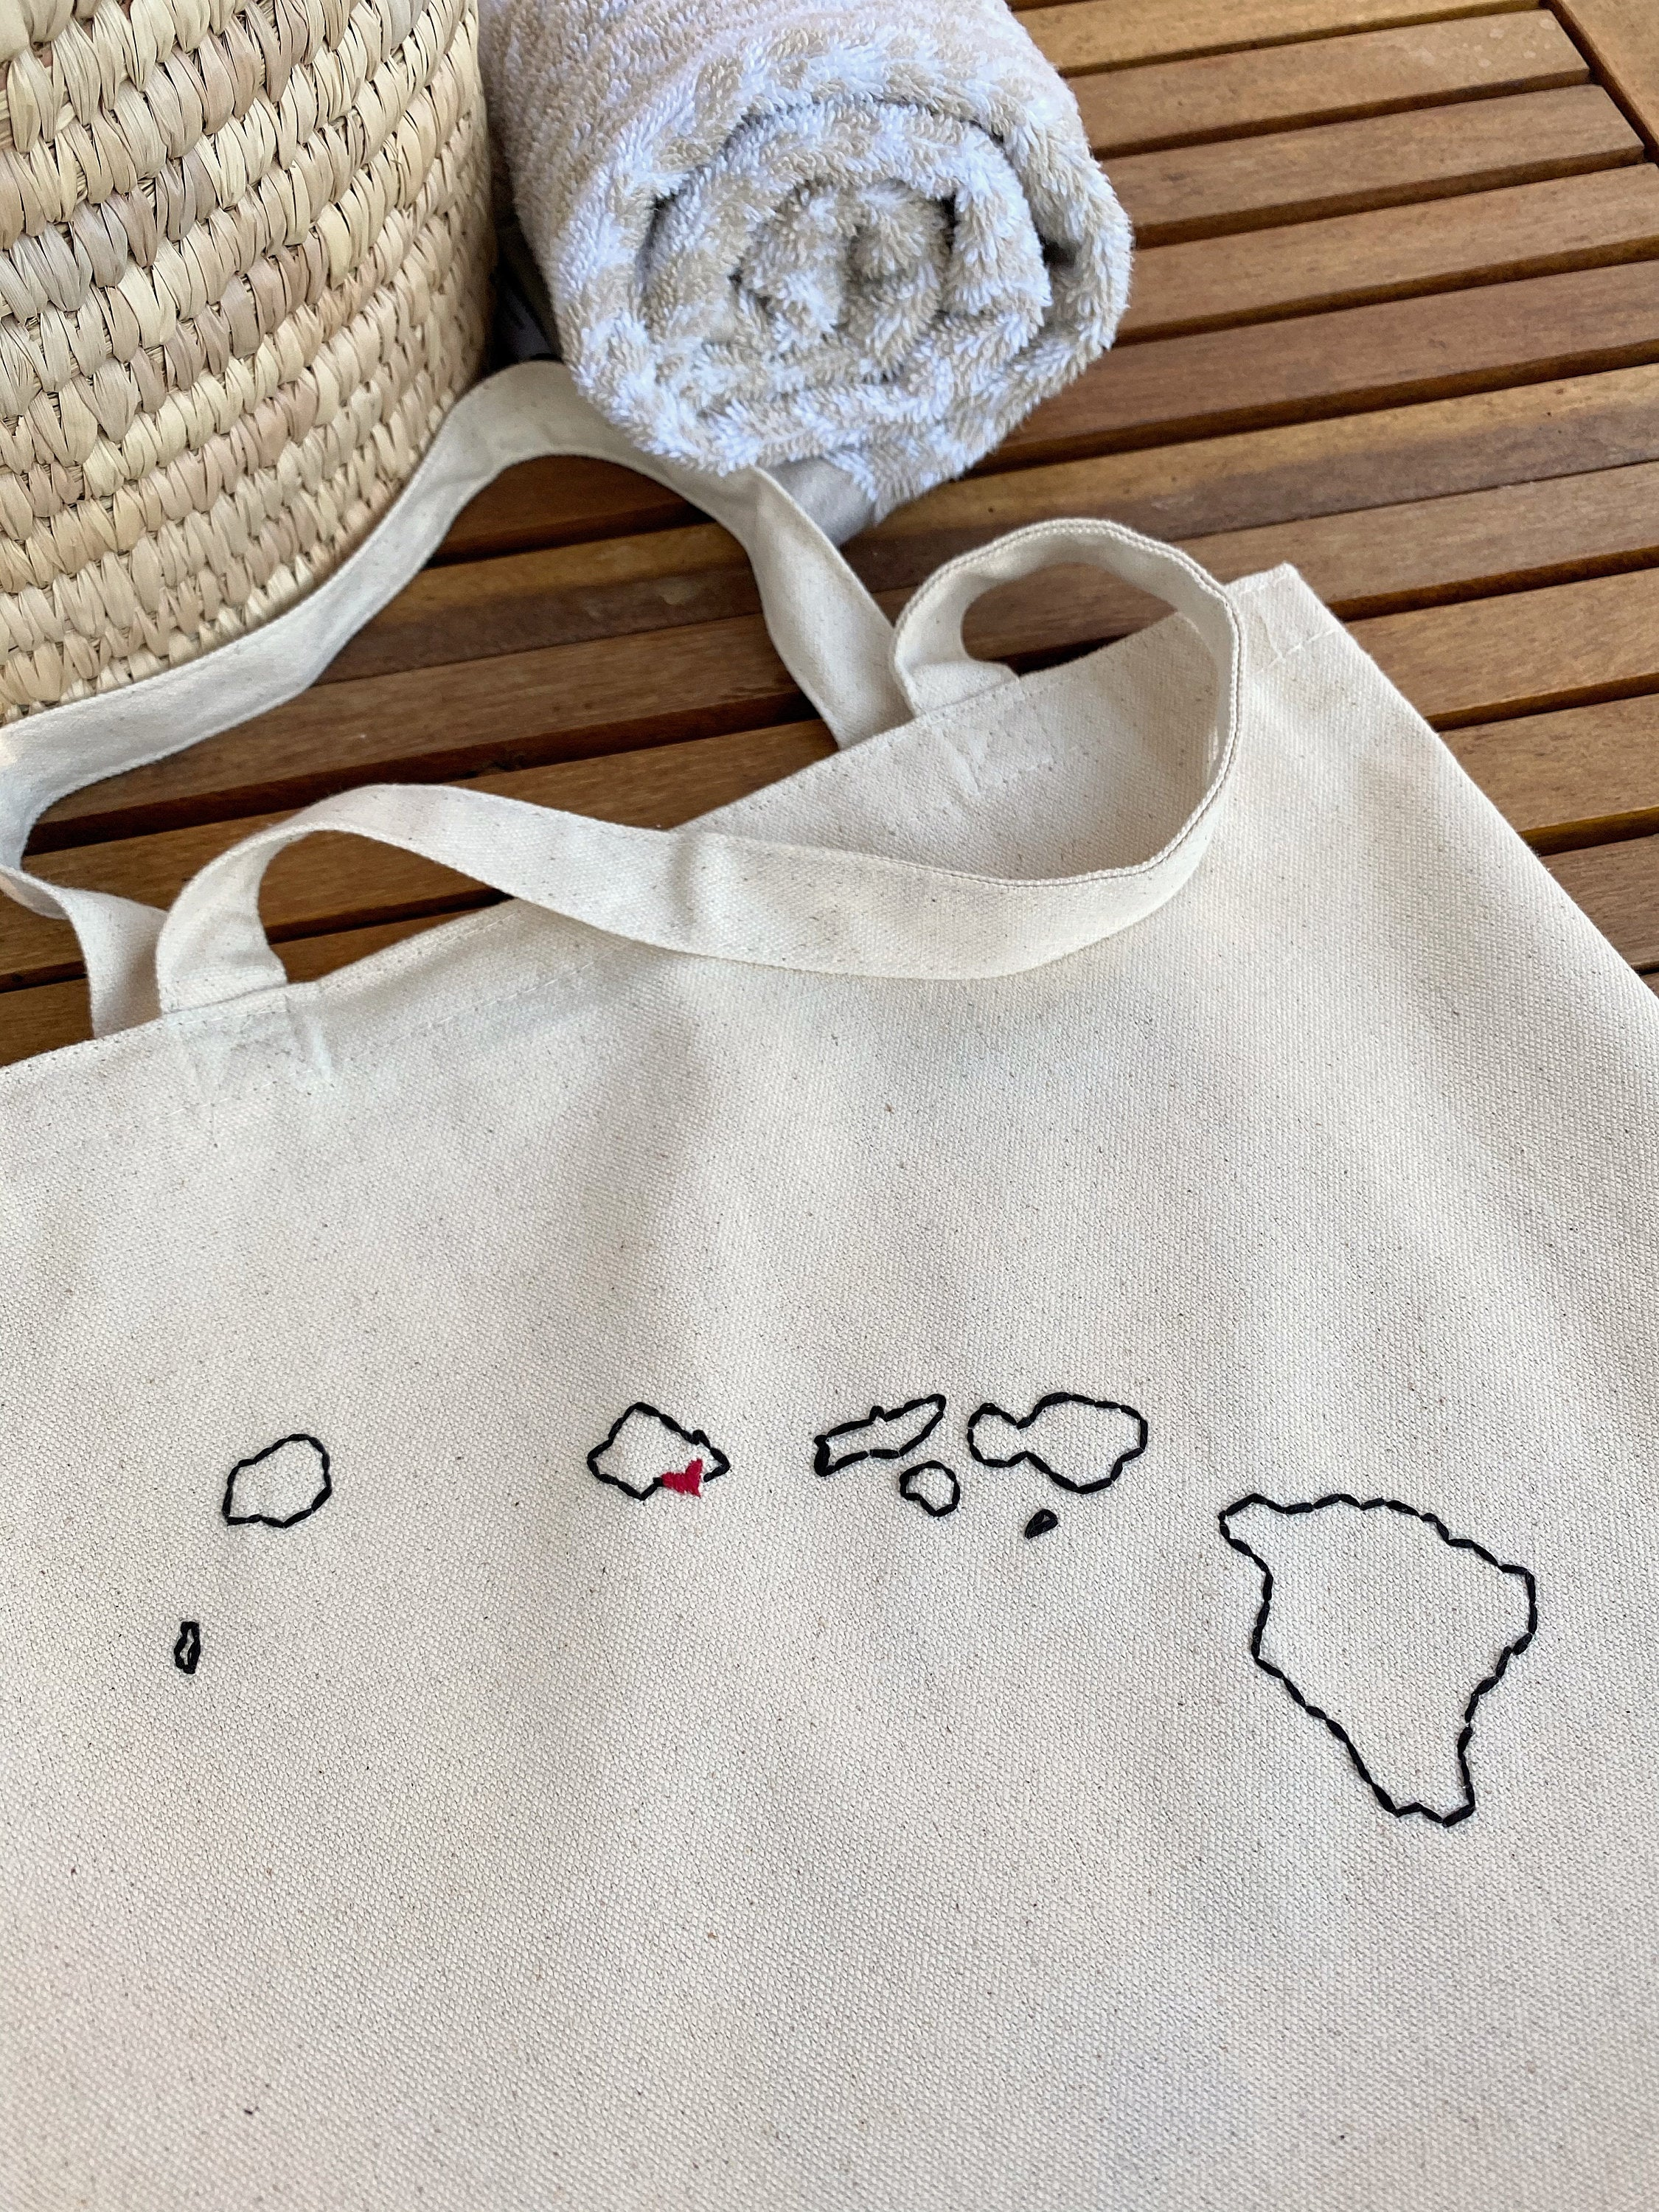 Small Tote bag collection ❞ Countries & U.S states [2 sides]